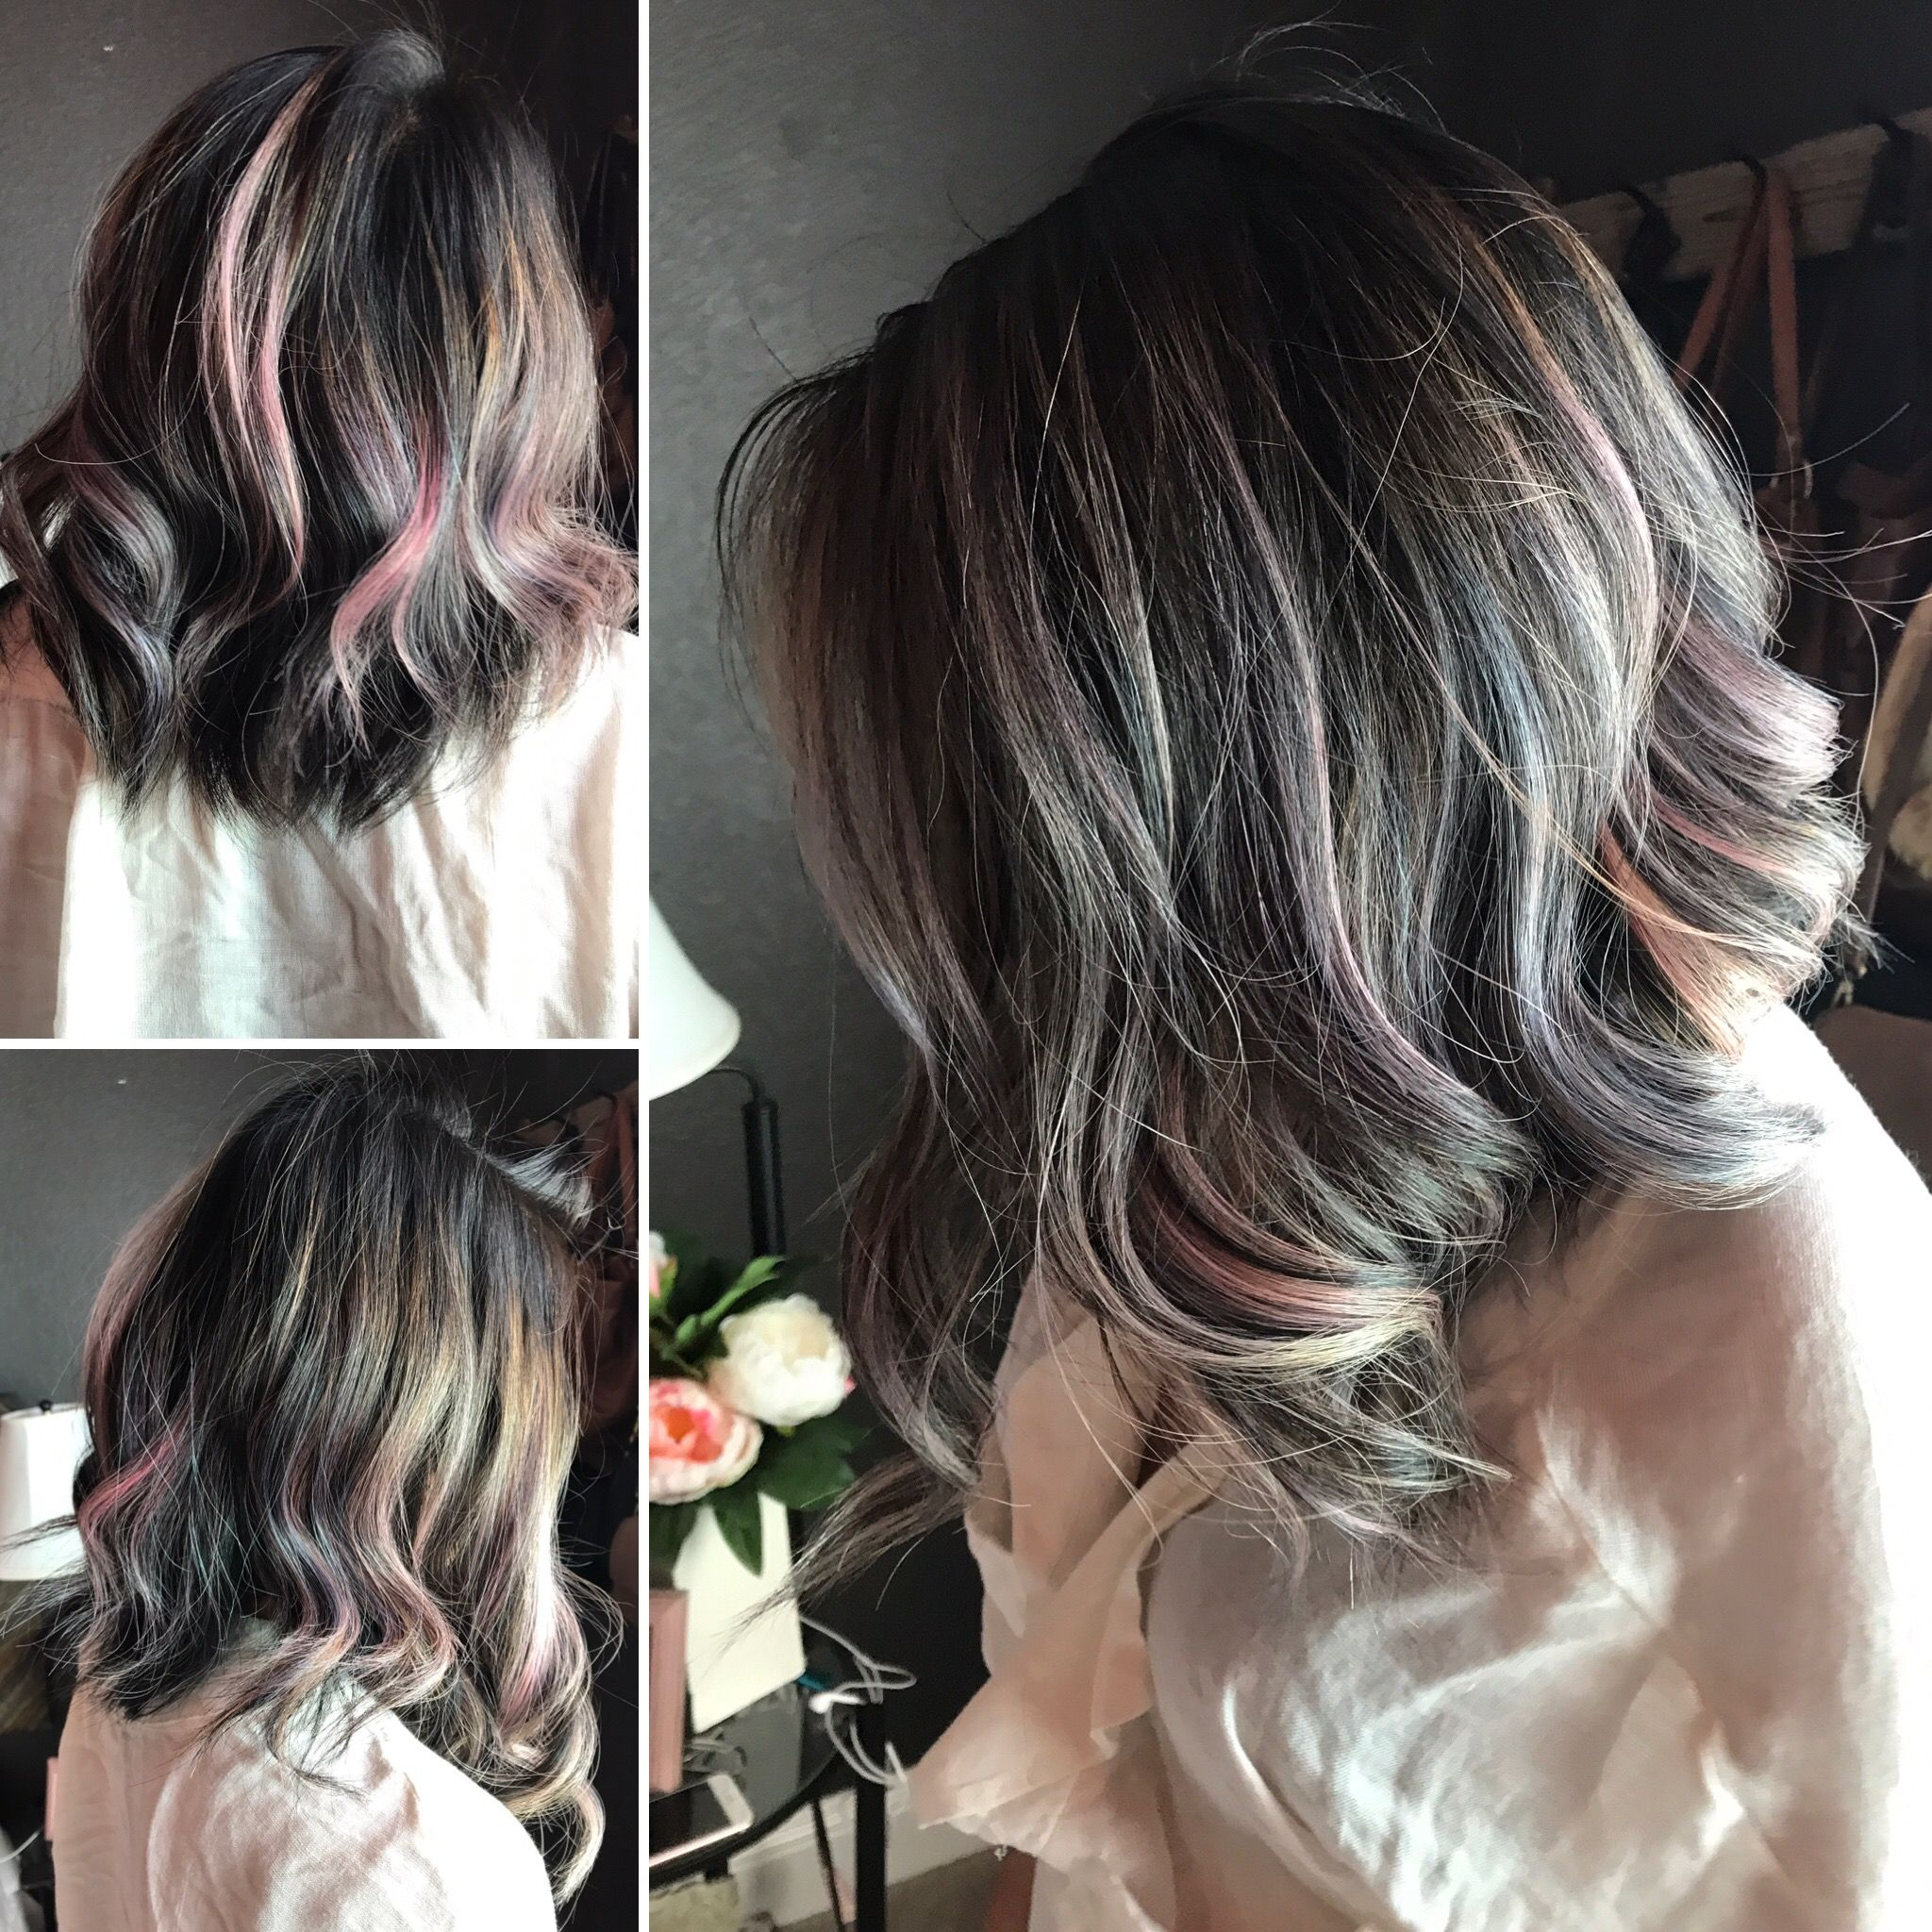 L Oreal Colorista Blue Hair And Soft Pink Applied As Highlights